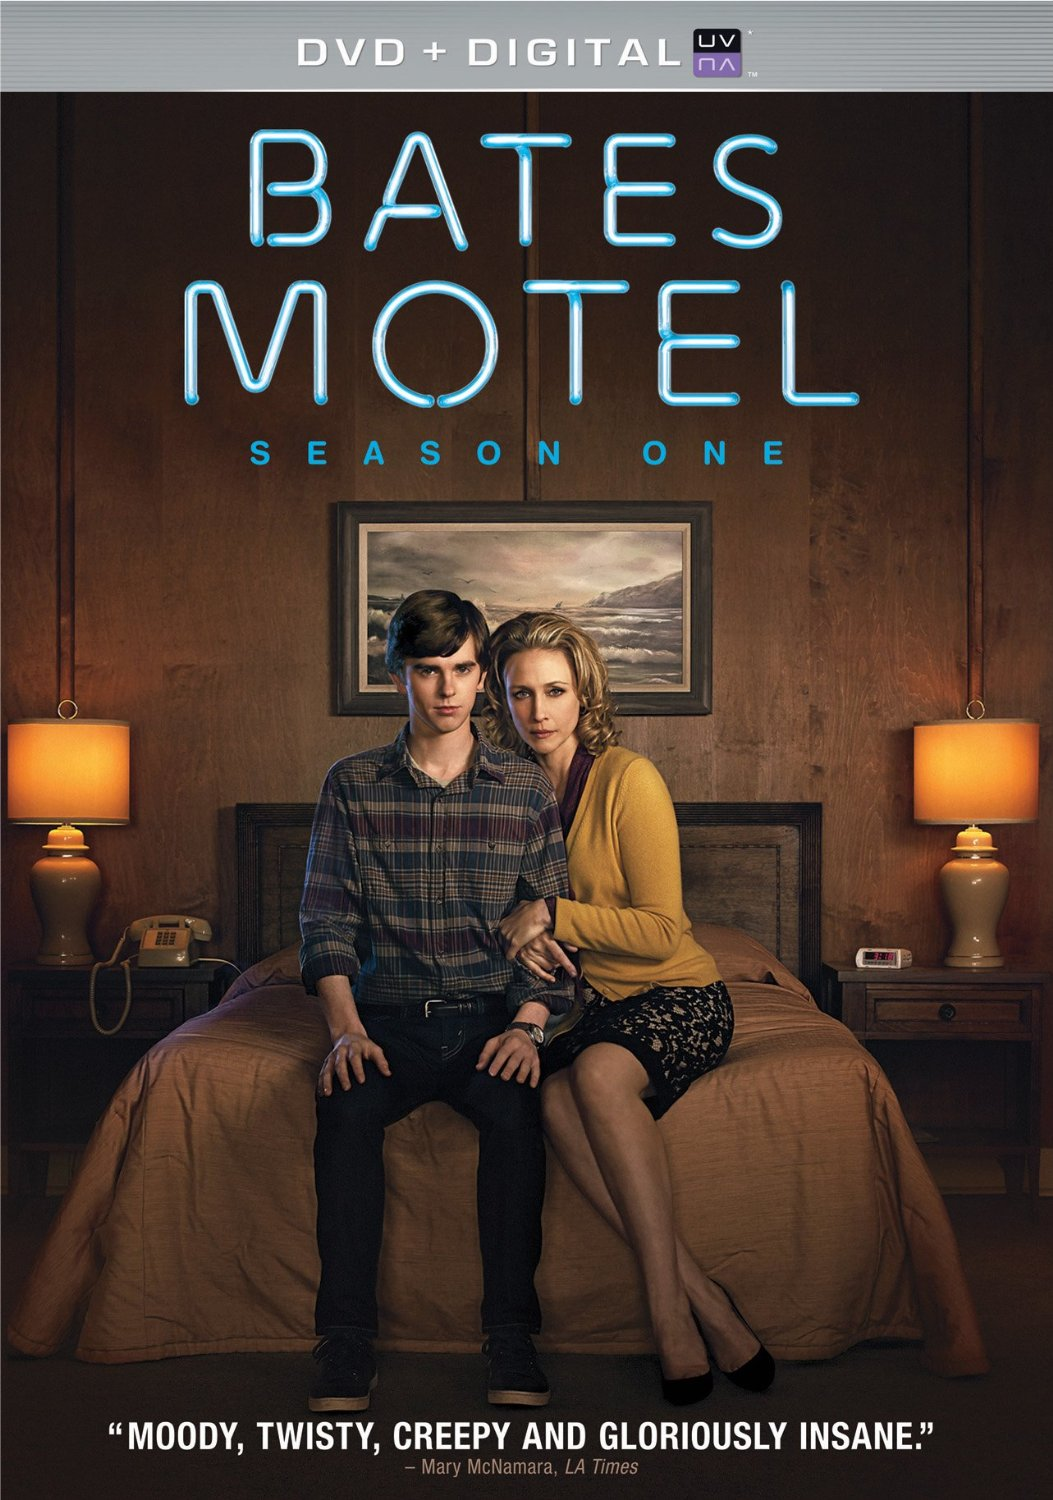 Bates Motel (2013 series)